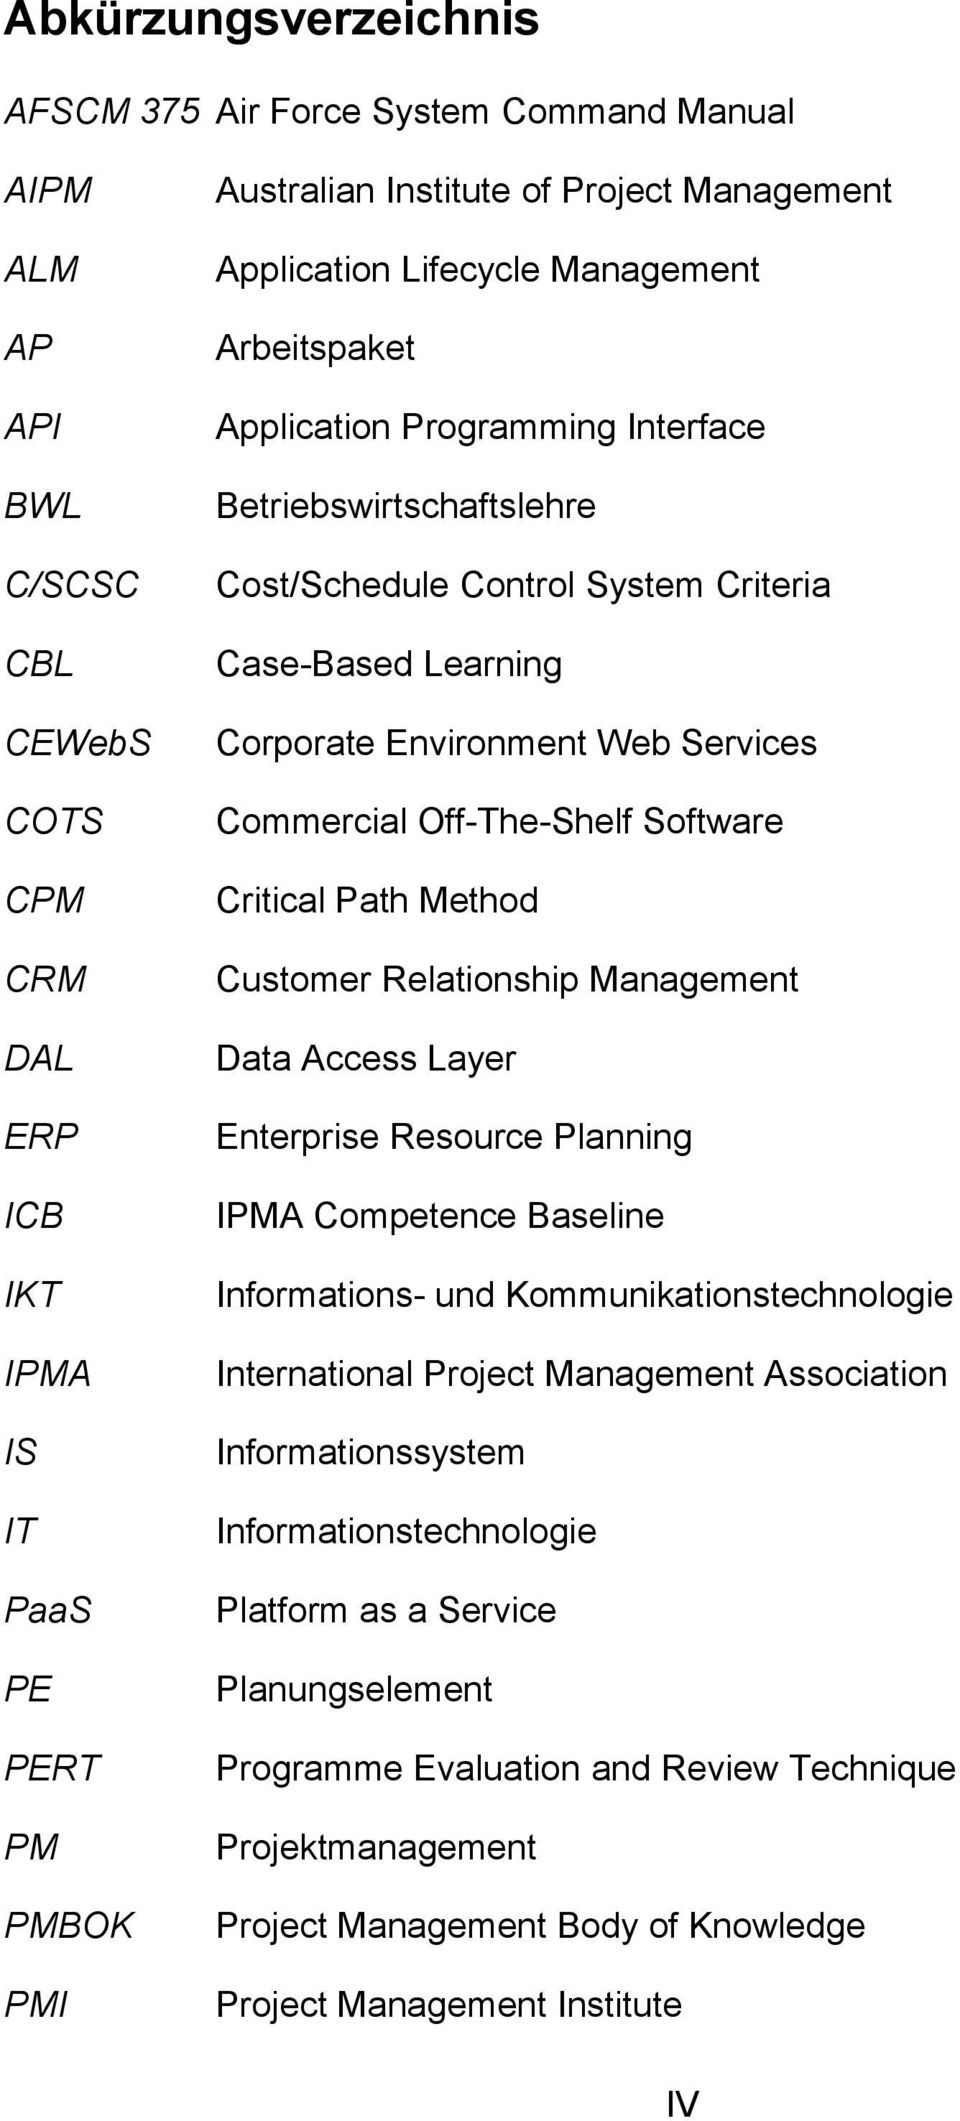 Critical Path Method CRM Customer Relationship Management DAL Data Access Layer ERP Enterprise Resource Planning ICB IPMA Competence Baseline IKT Informations- und Kommunikationstechnologie IPMA